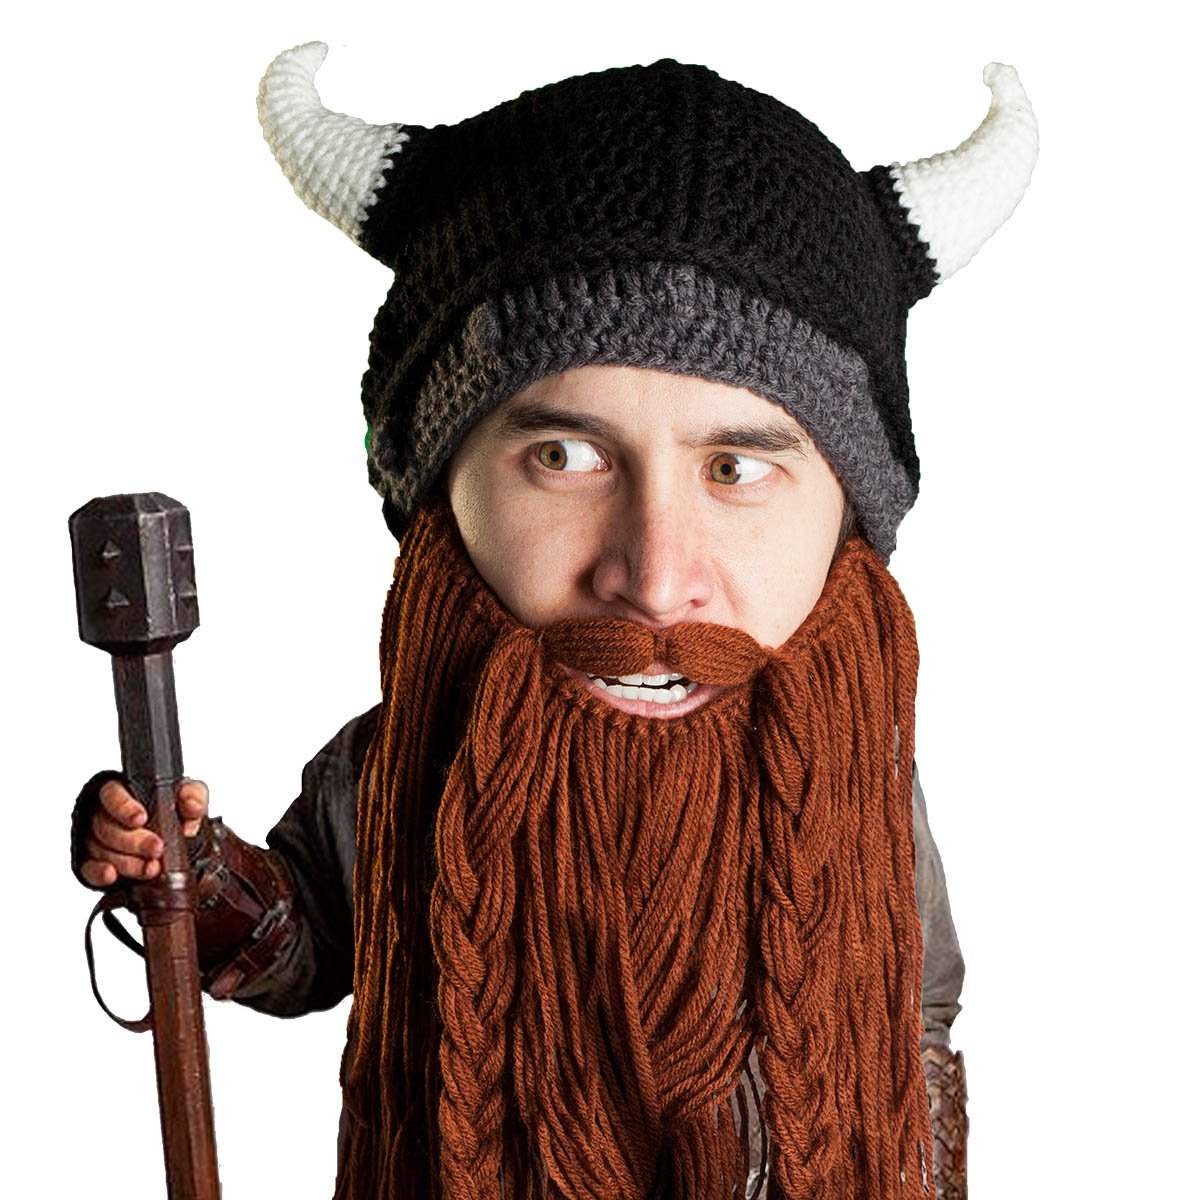 Beard Head Viking Pillager Helmet